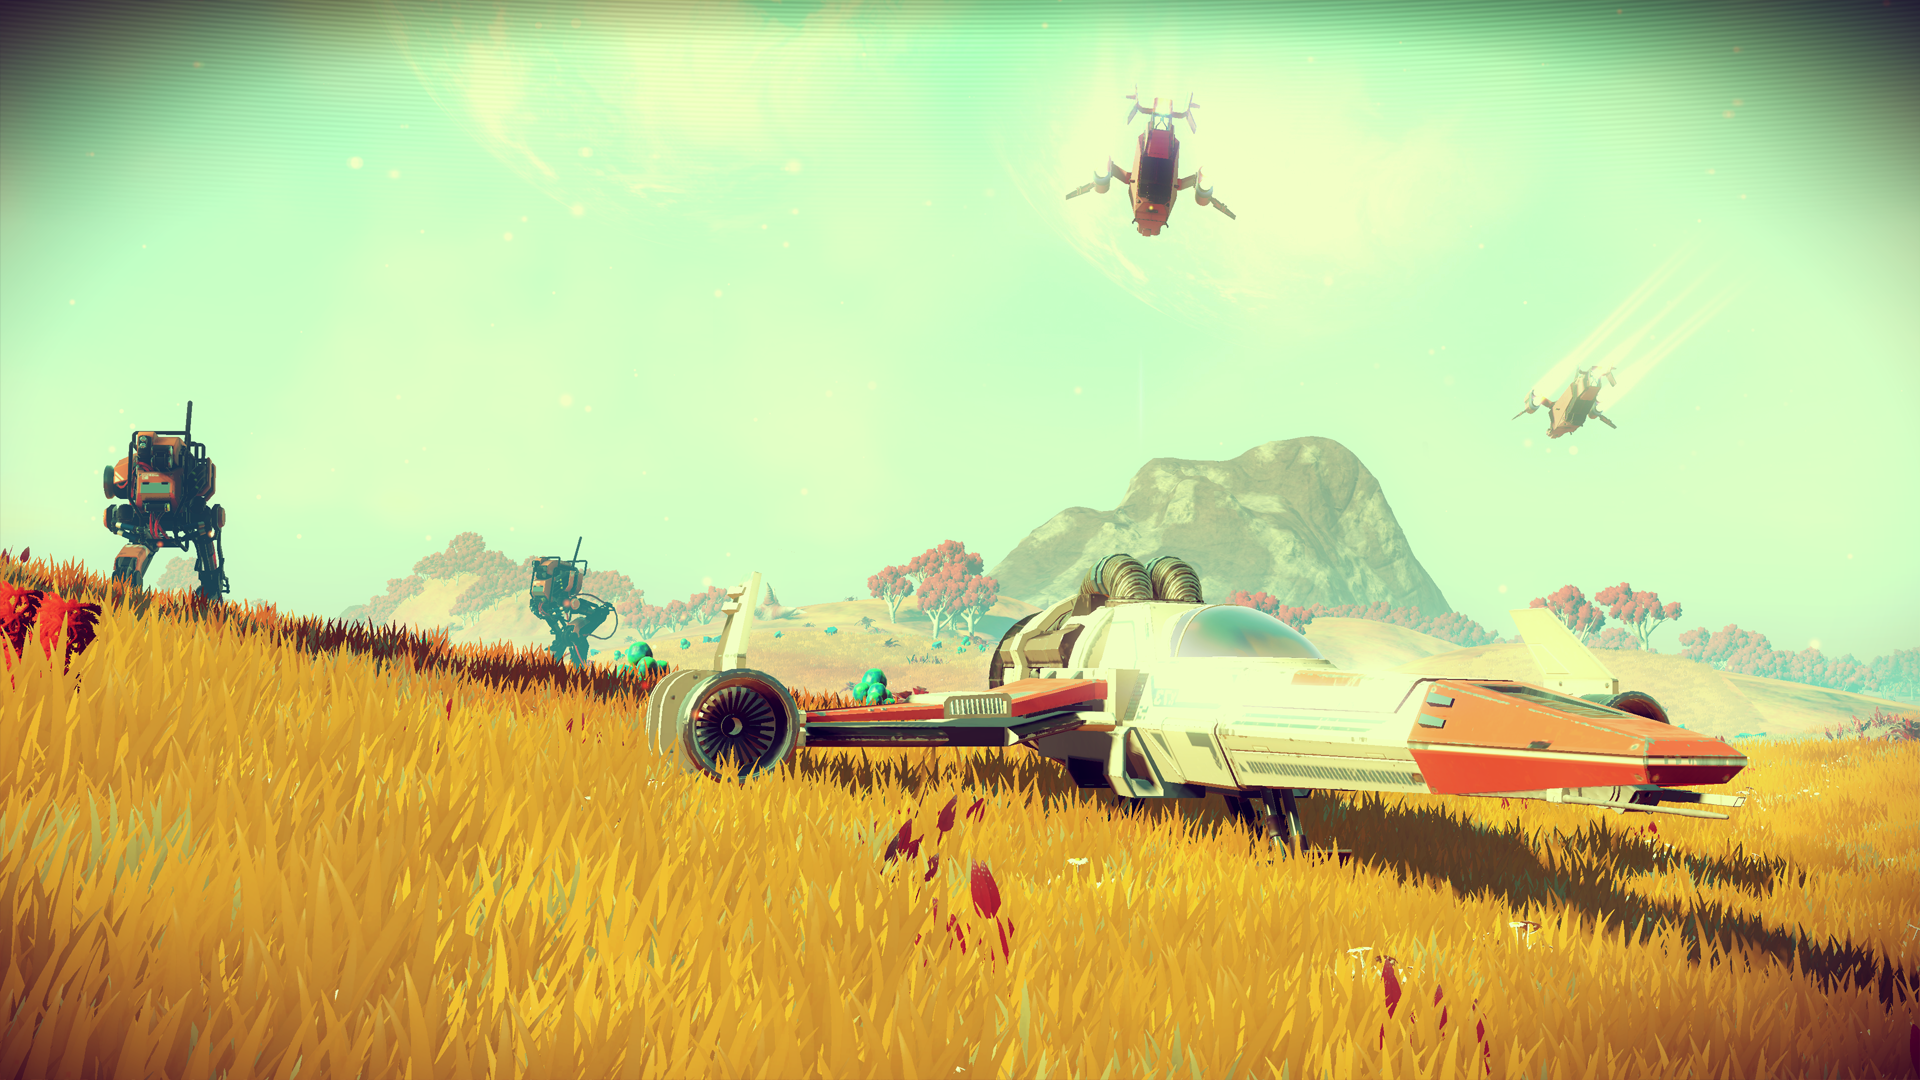 No Man's Sky PS4 launch in India postponed